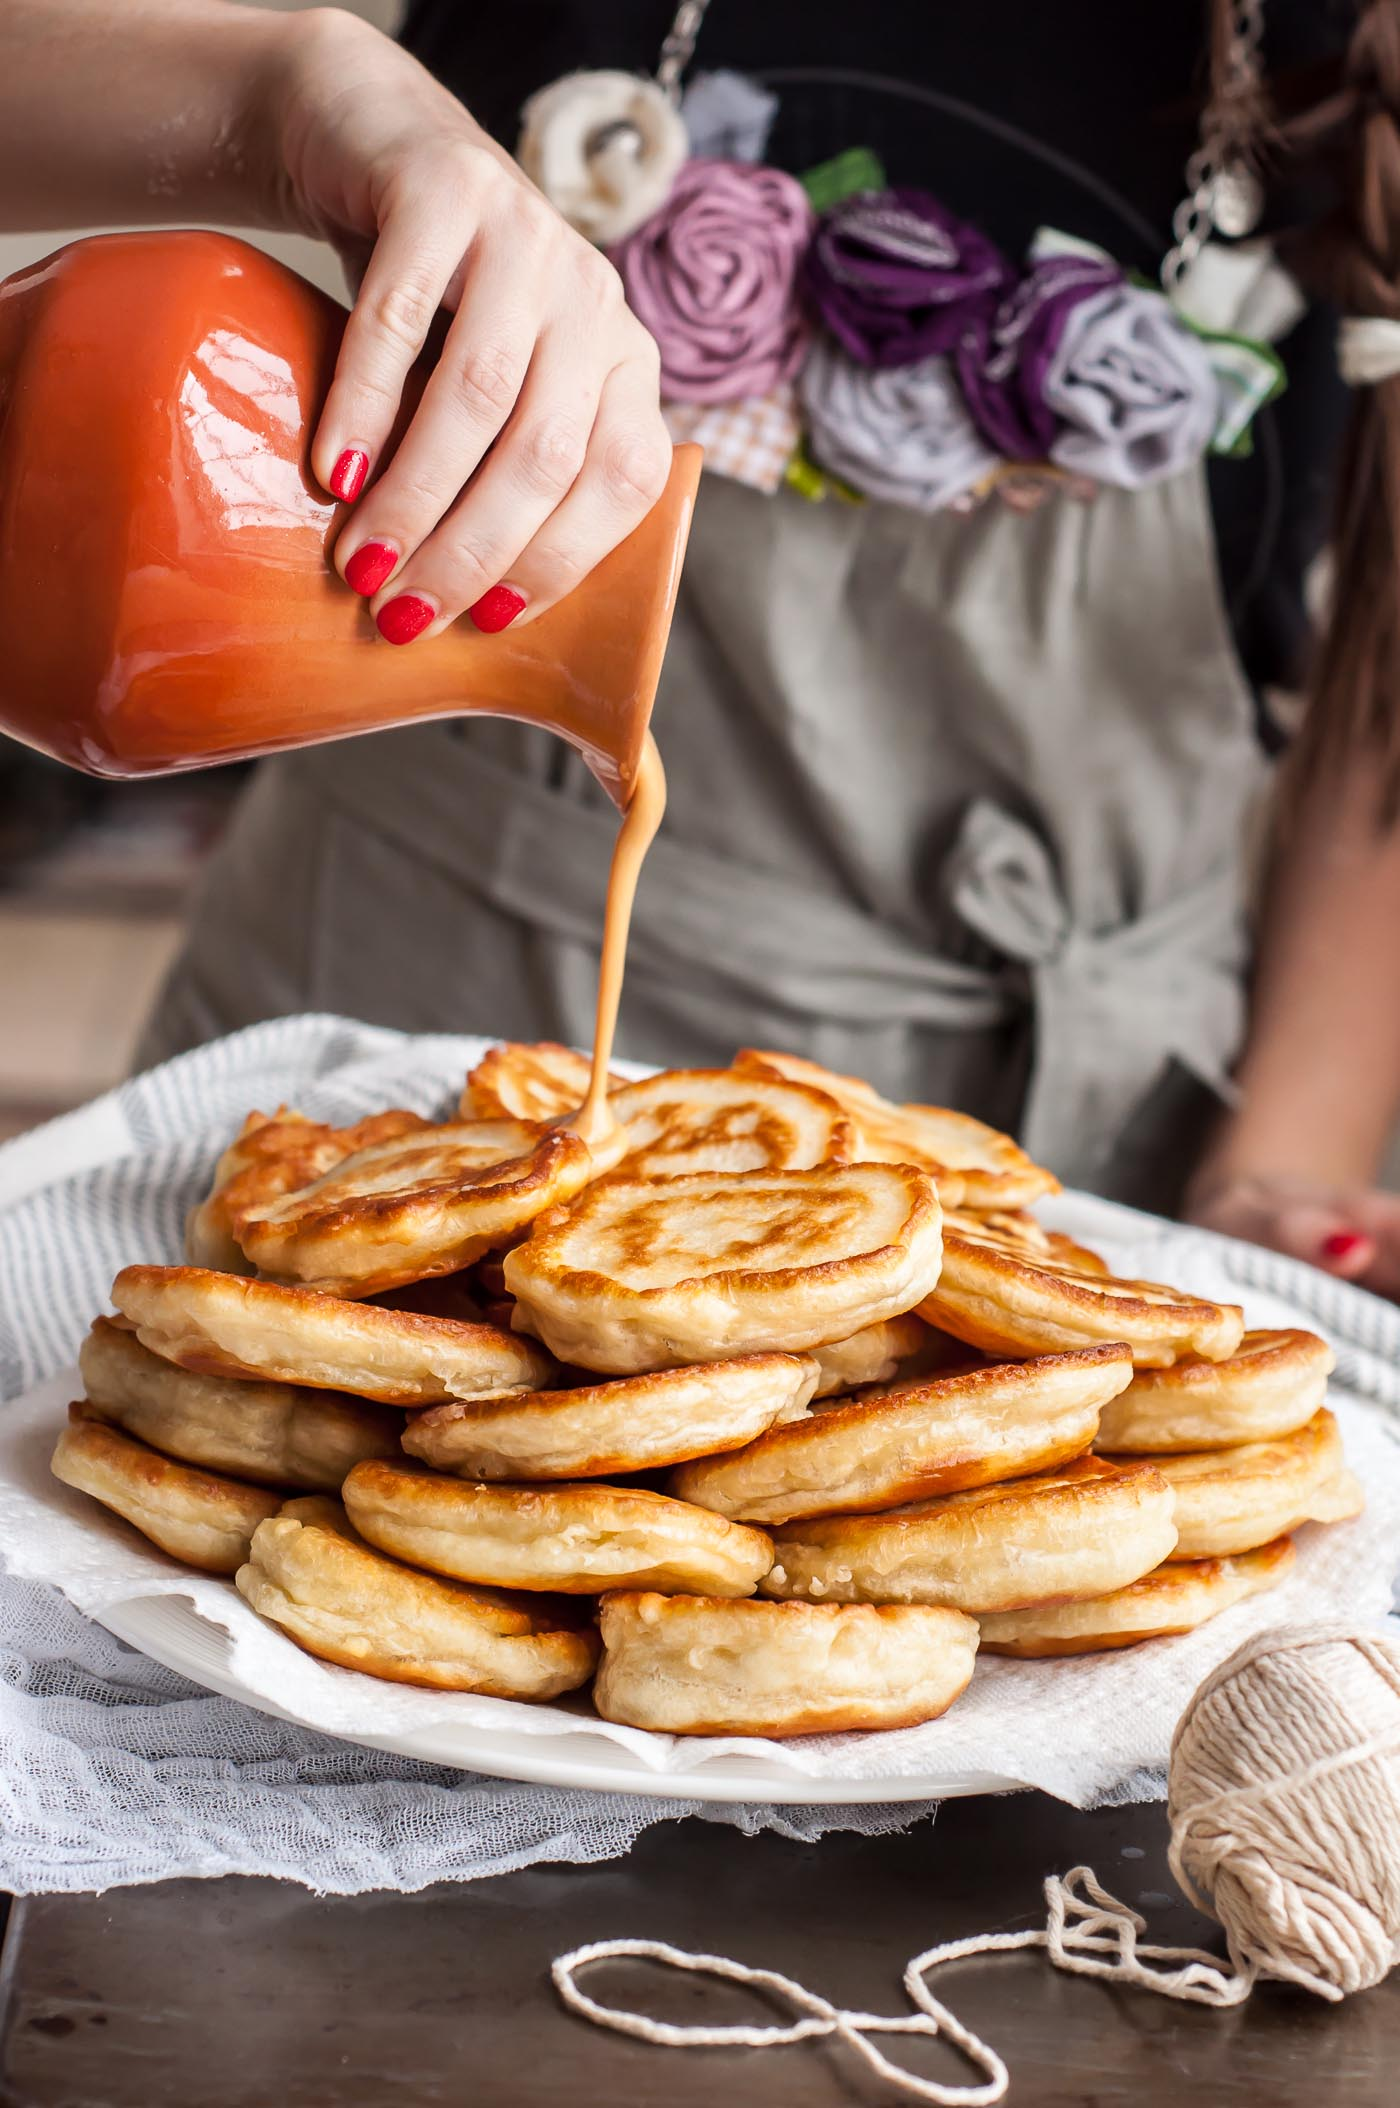 Pancakes on kefir without eggs - fast, cheap, tasty